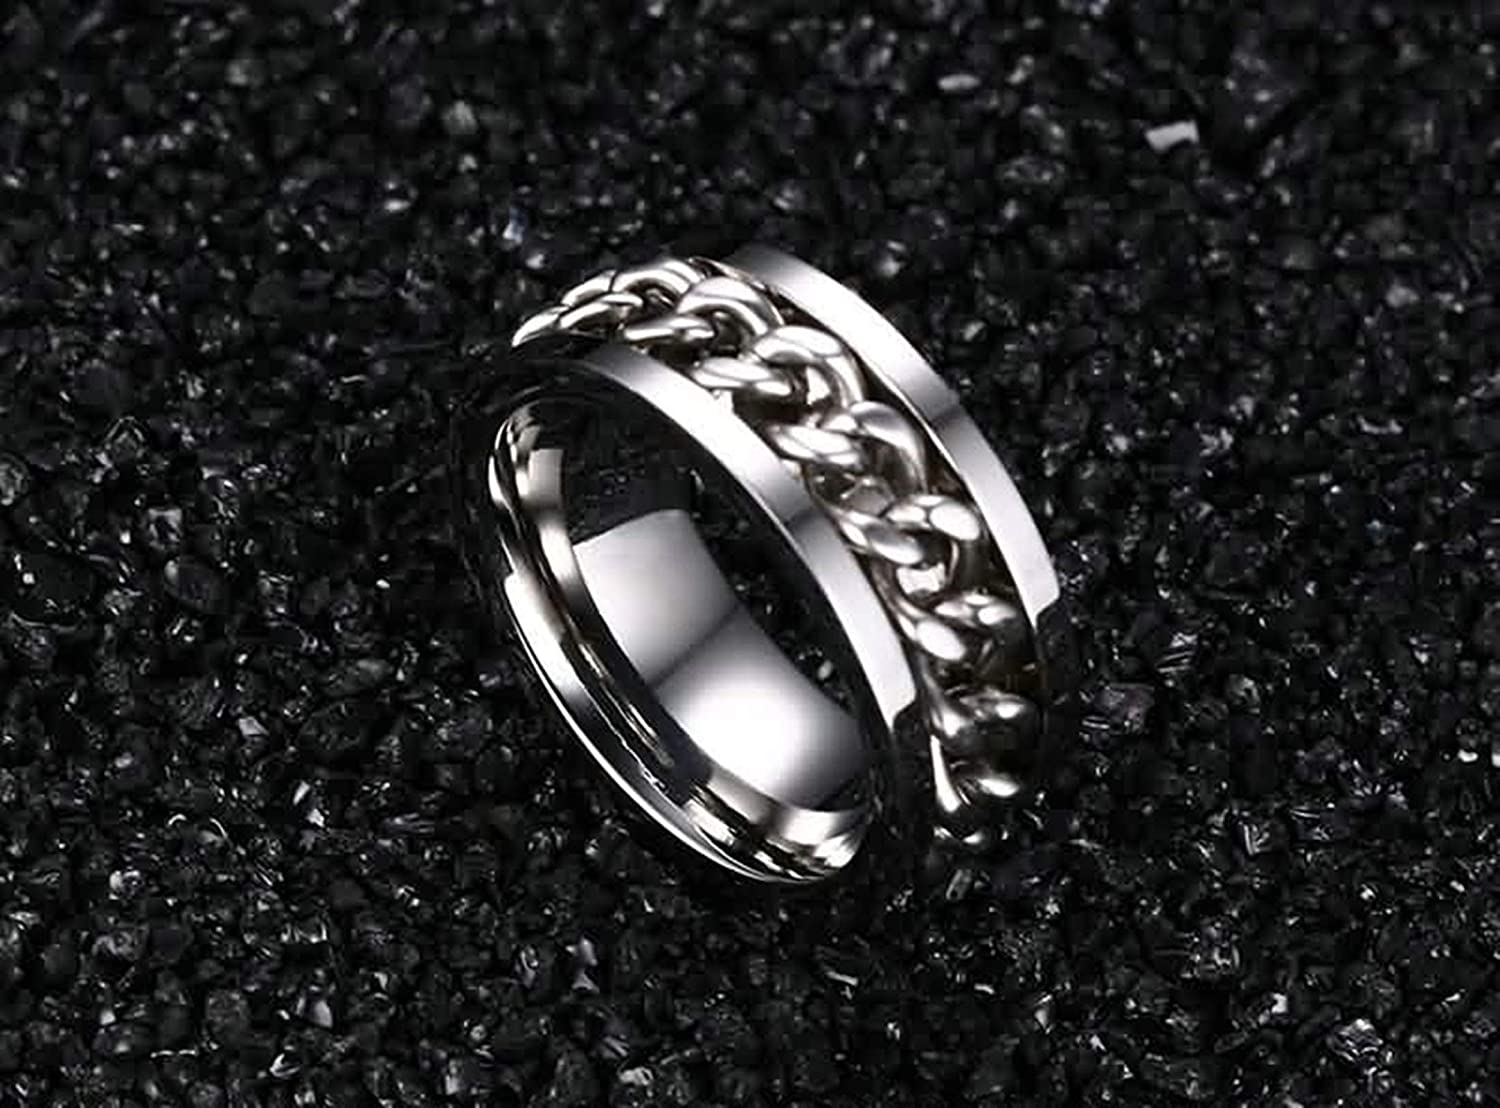 Epinki Ring Engagement Band Jewelry Stainless Steel Rings for Men Wedding Ring Chain Design Ring